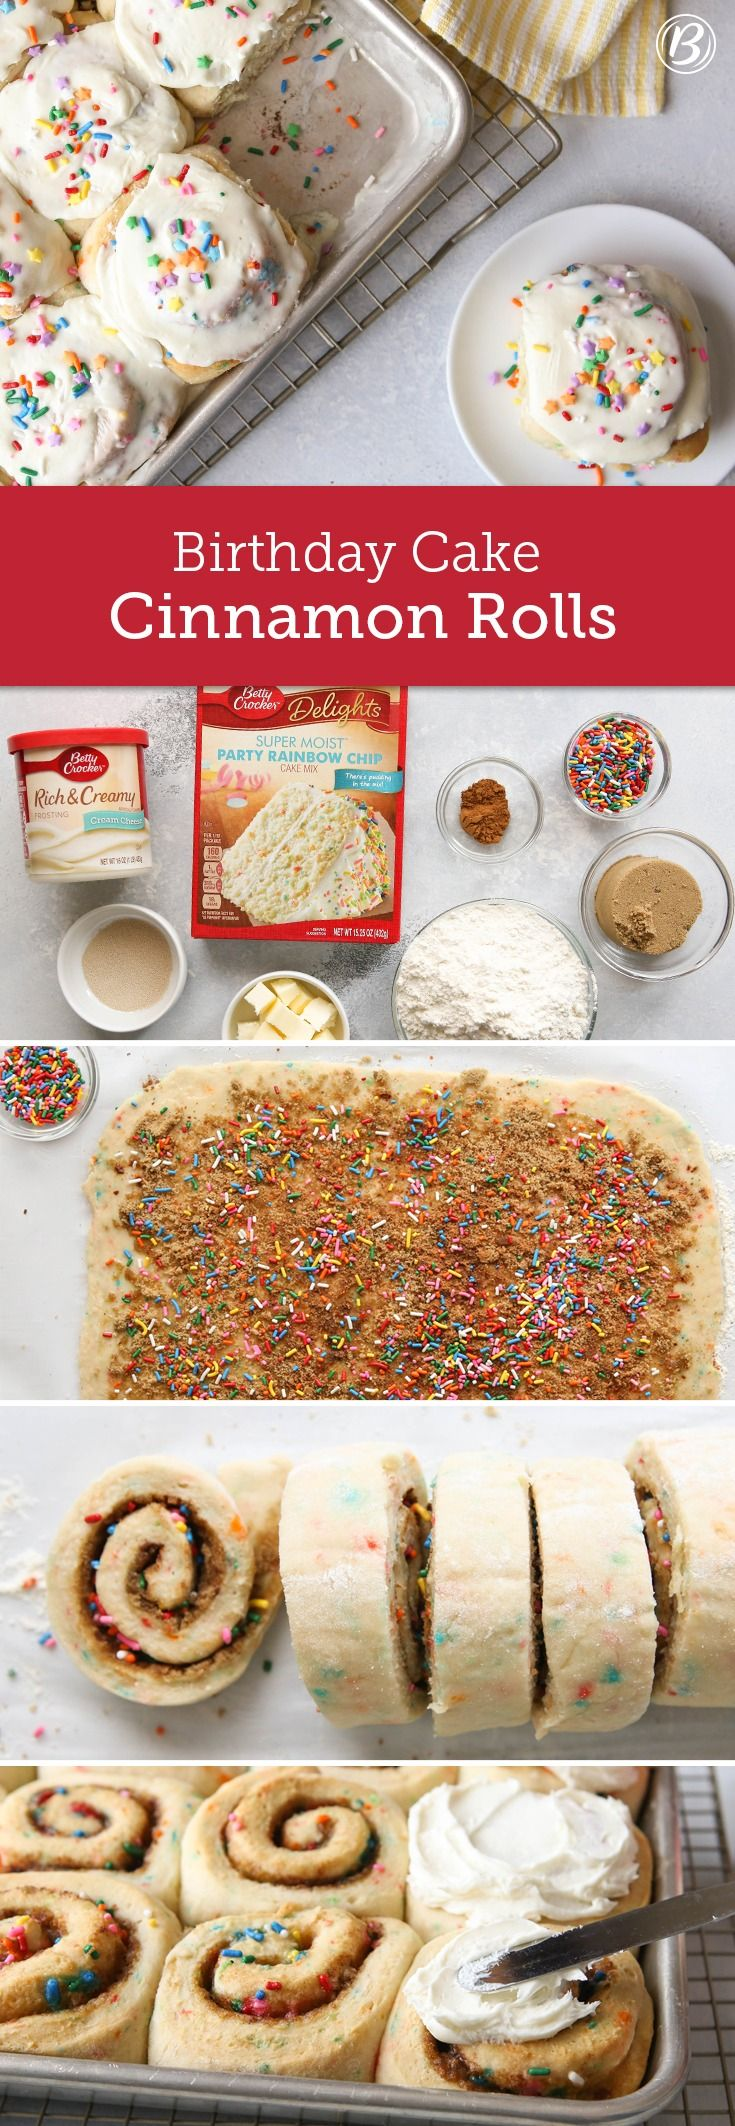 Birthday Cake Cinnamon Rolls Recipe Breakfast Brunch